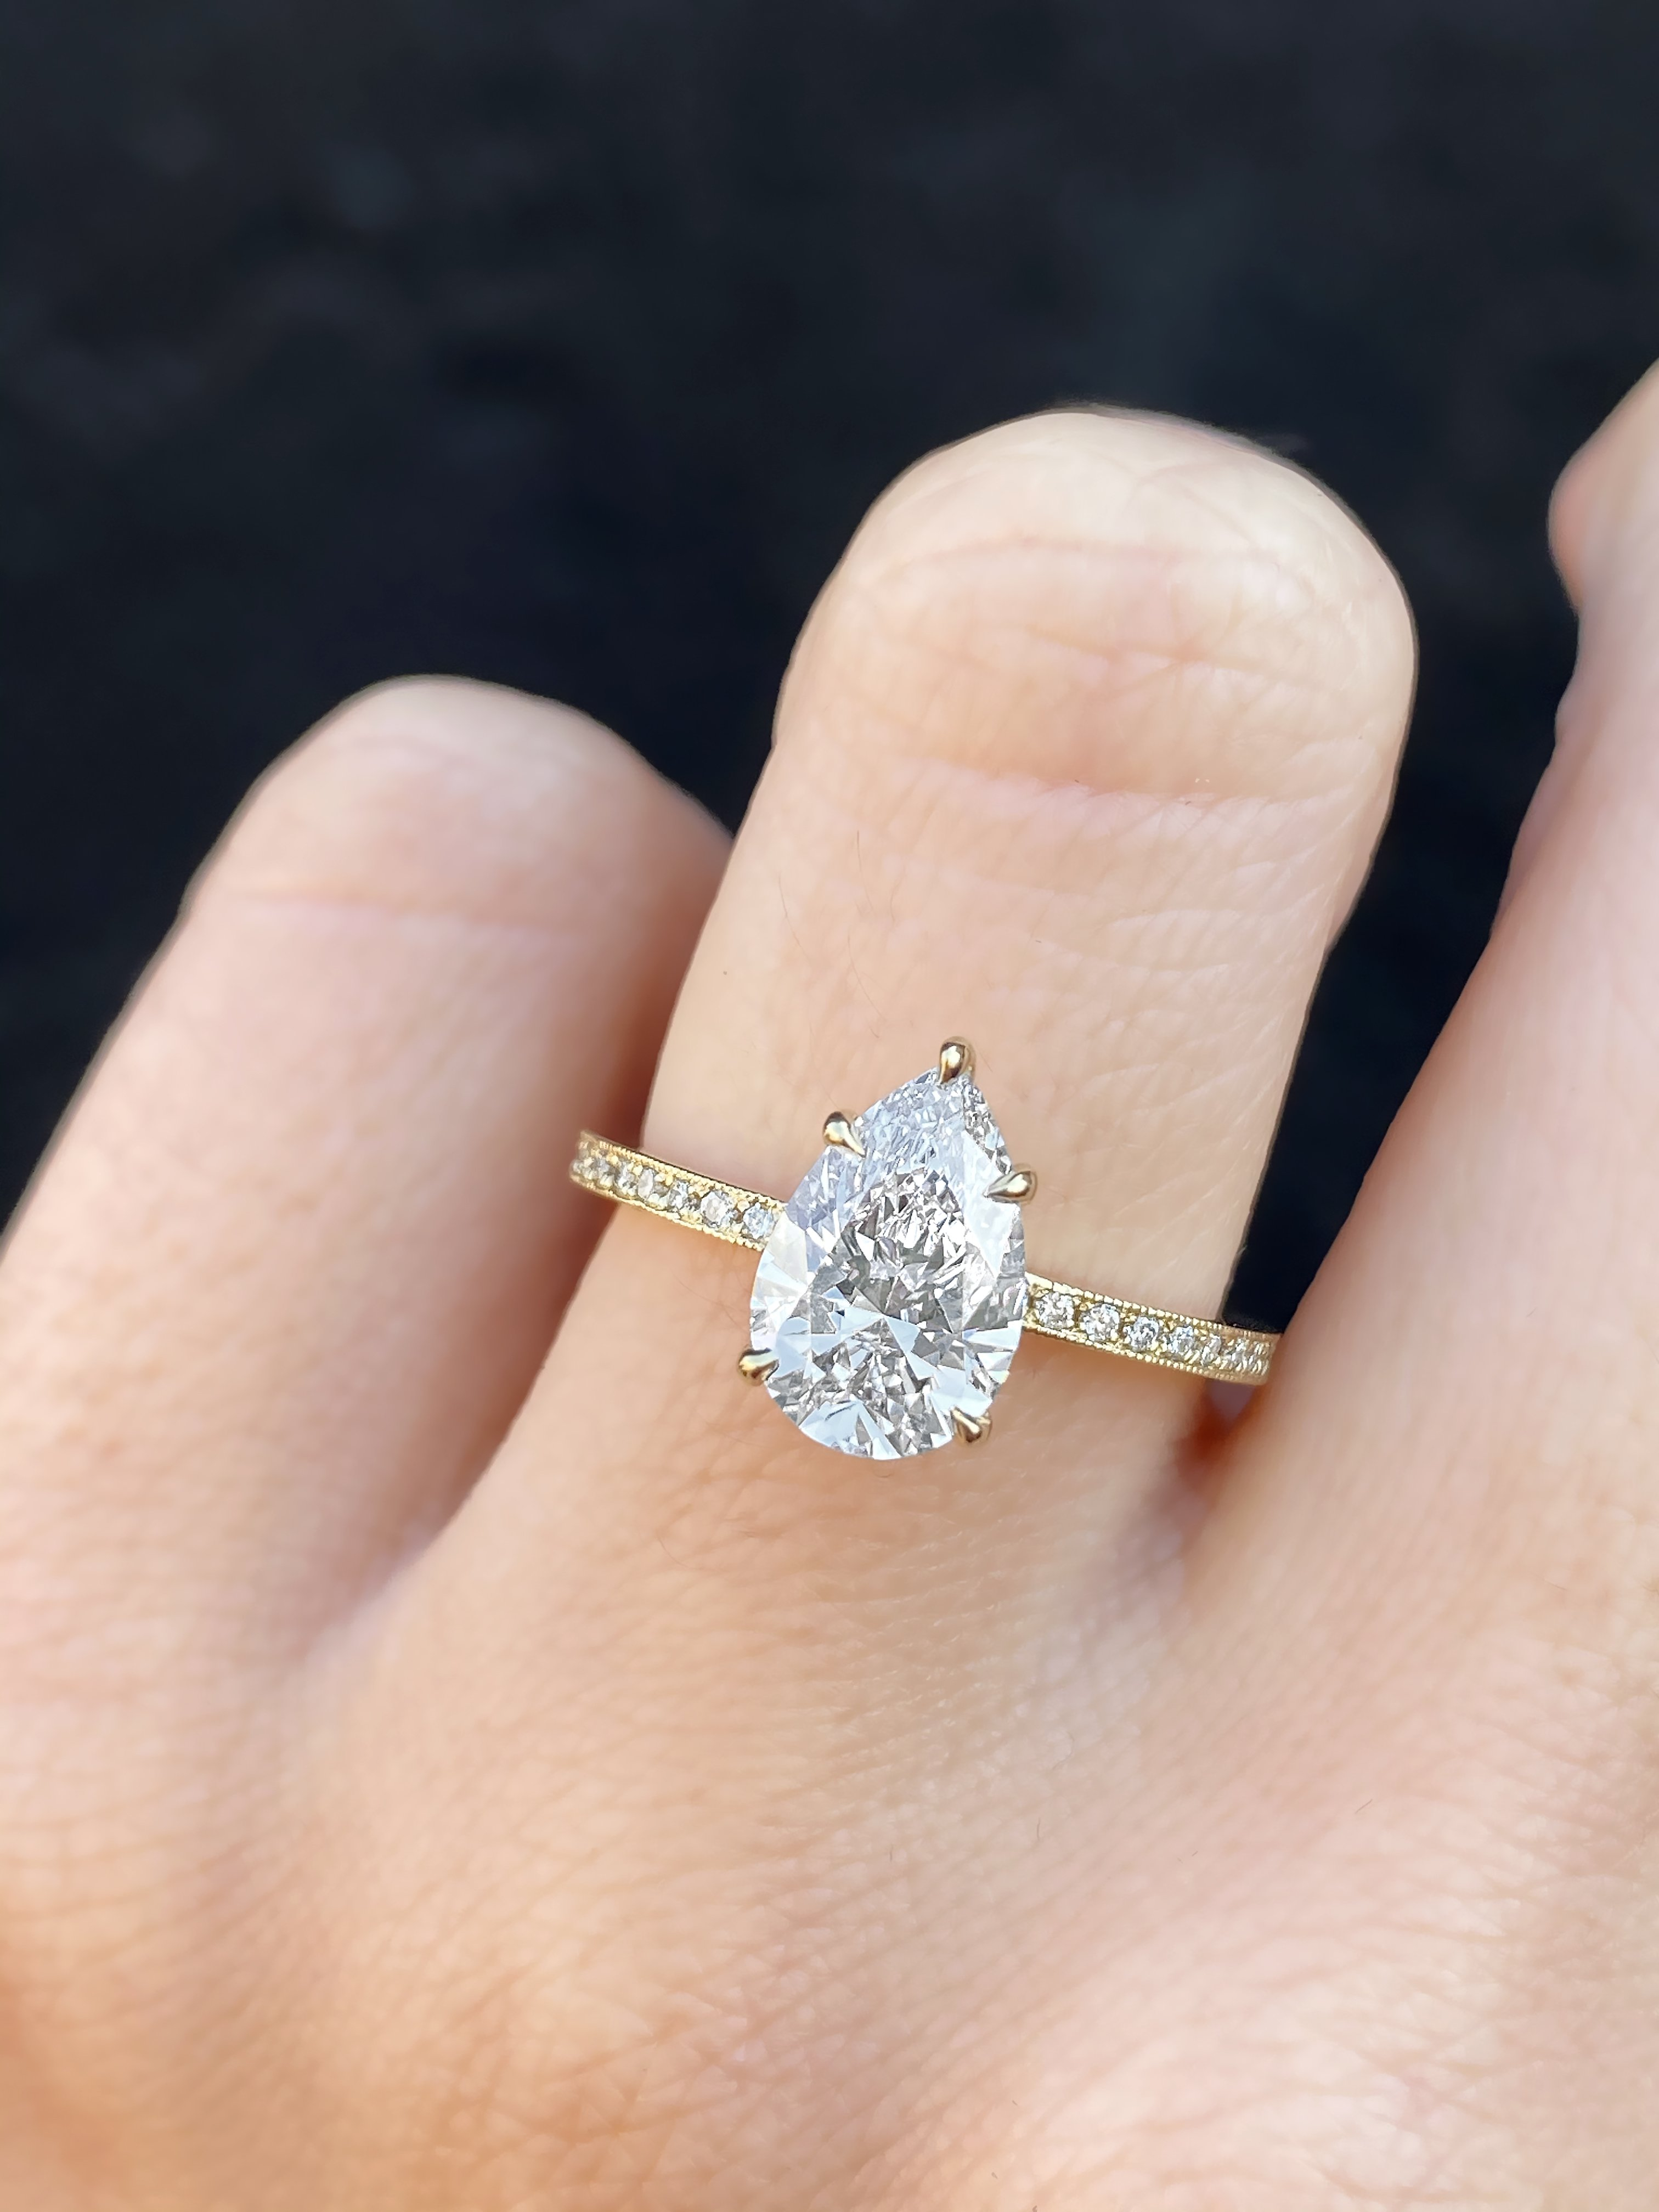 How to Sell a Diamond Ring to a Pawn Shop?